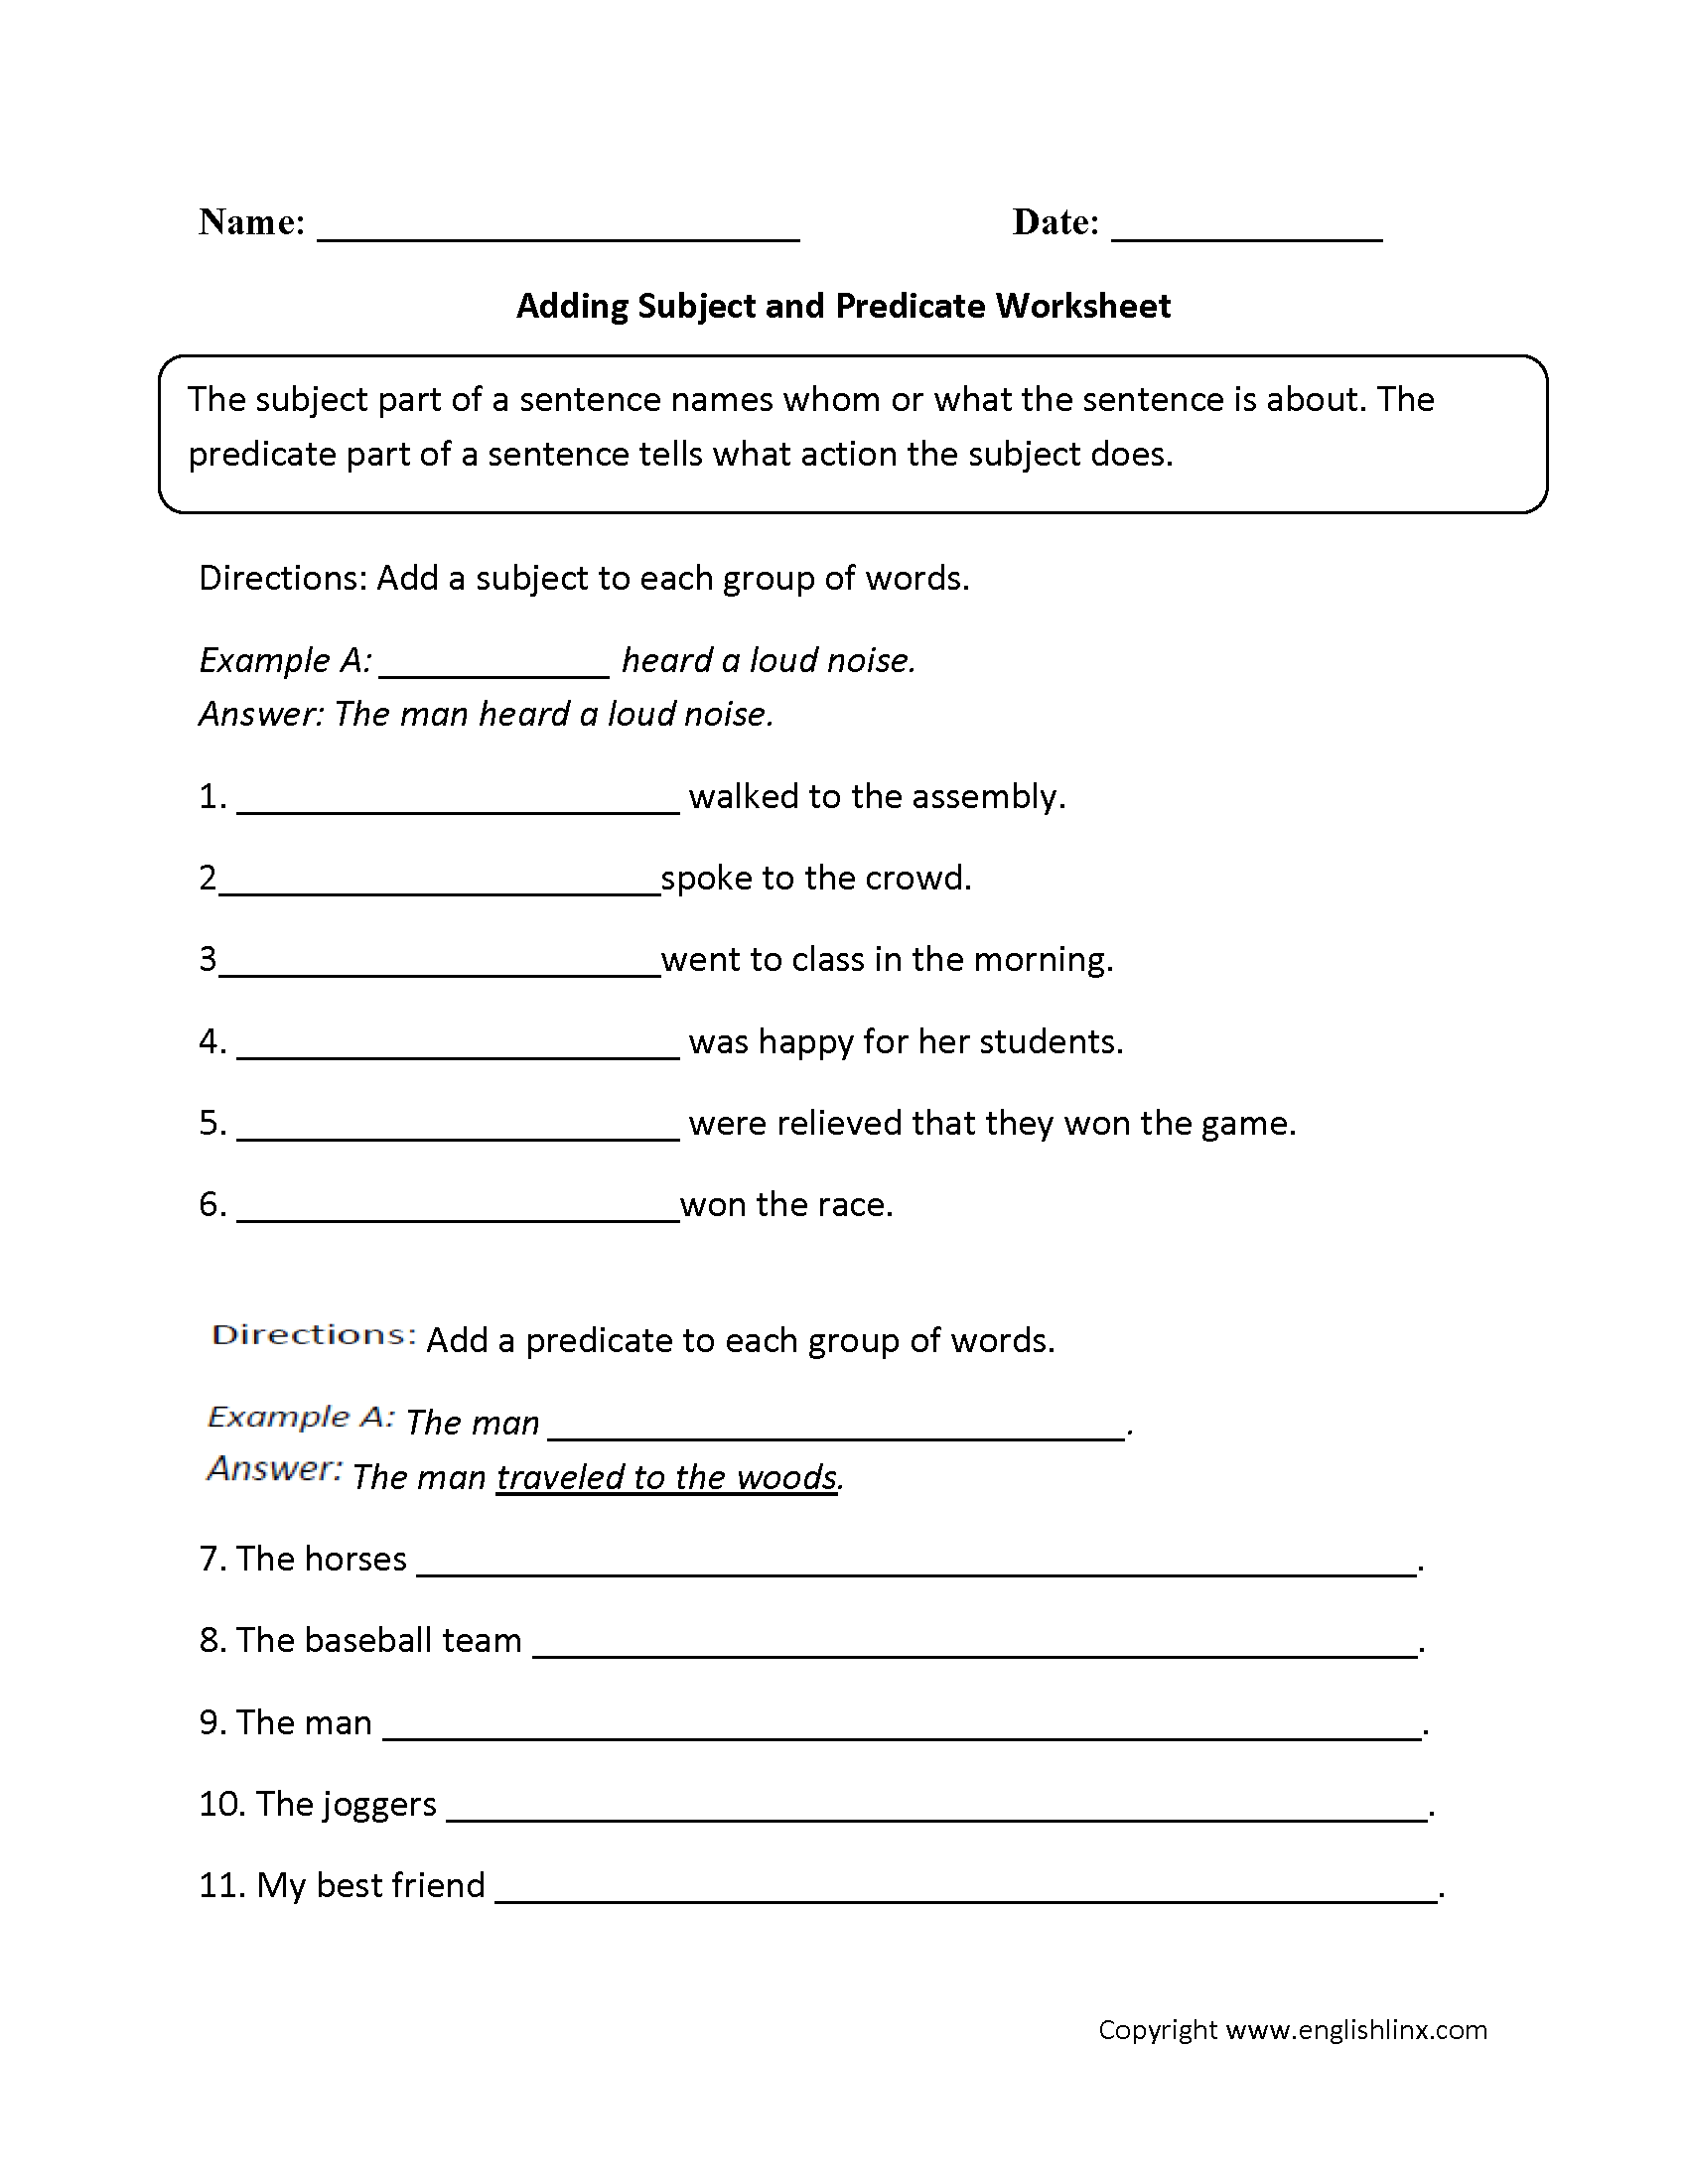 Worksheets Grammer Worksheets content by subject worksheets grammar worksheets